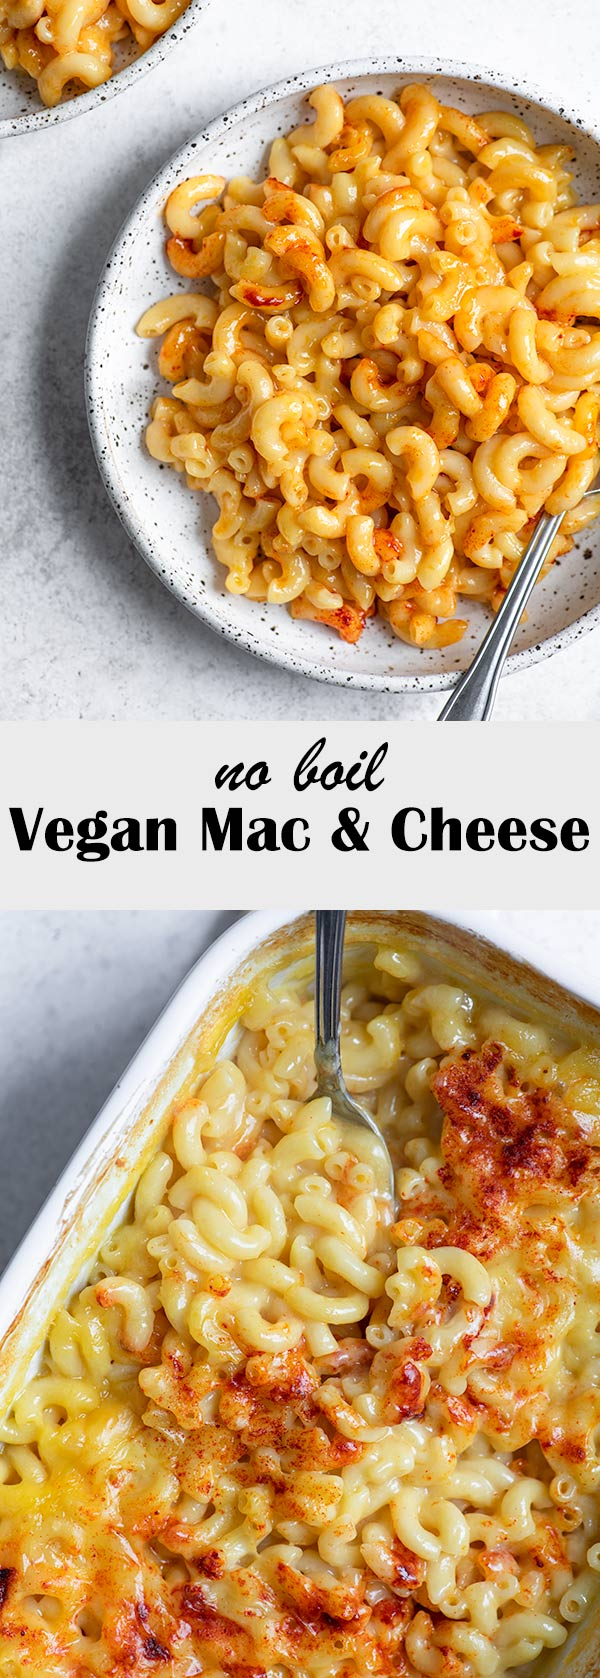 This vegan mac and cheese is made in the oven for a no-boil method. It makes a creamy cheesy sauce and crispy top, while cooking the noodles to perfection! It's an easy 1-dish dinner, perfect for busy weeknights or hands off weekends. It makes plenty for leftovers or to feed a crowd! Recipe at thecuriouschickpea.com #veganpasta #vegancheese #veganmacandcheese #macandcheese #pasta #veganmain #veganentree